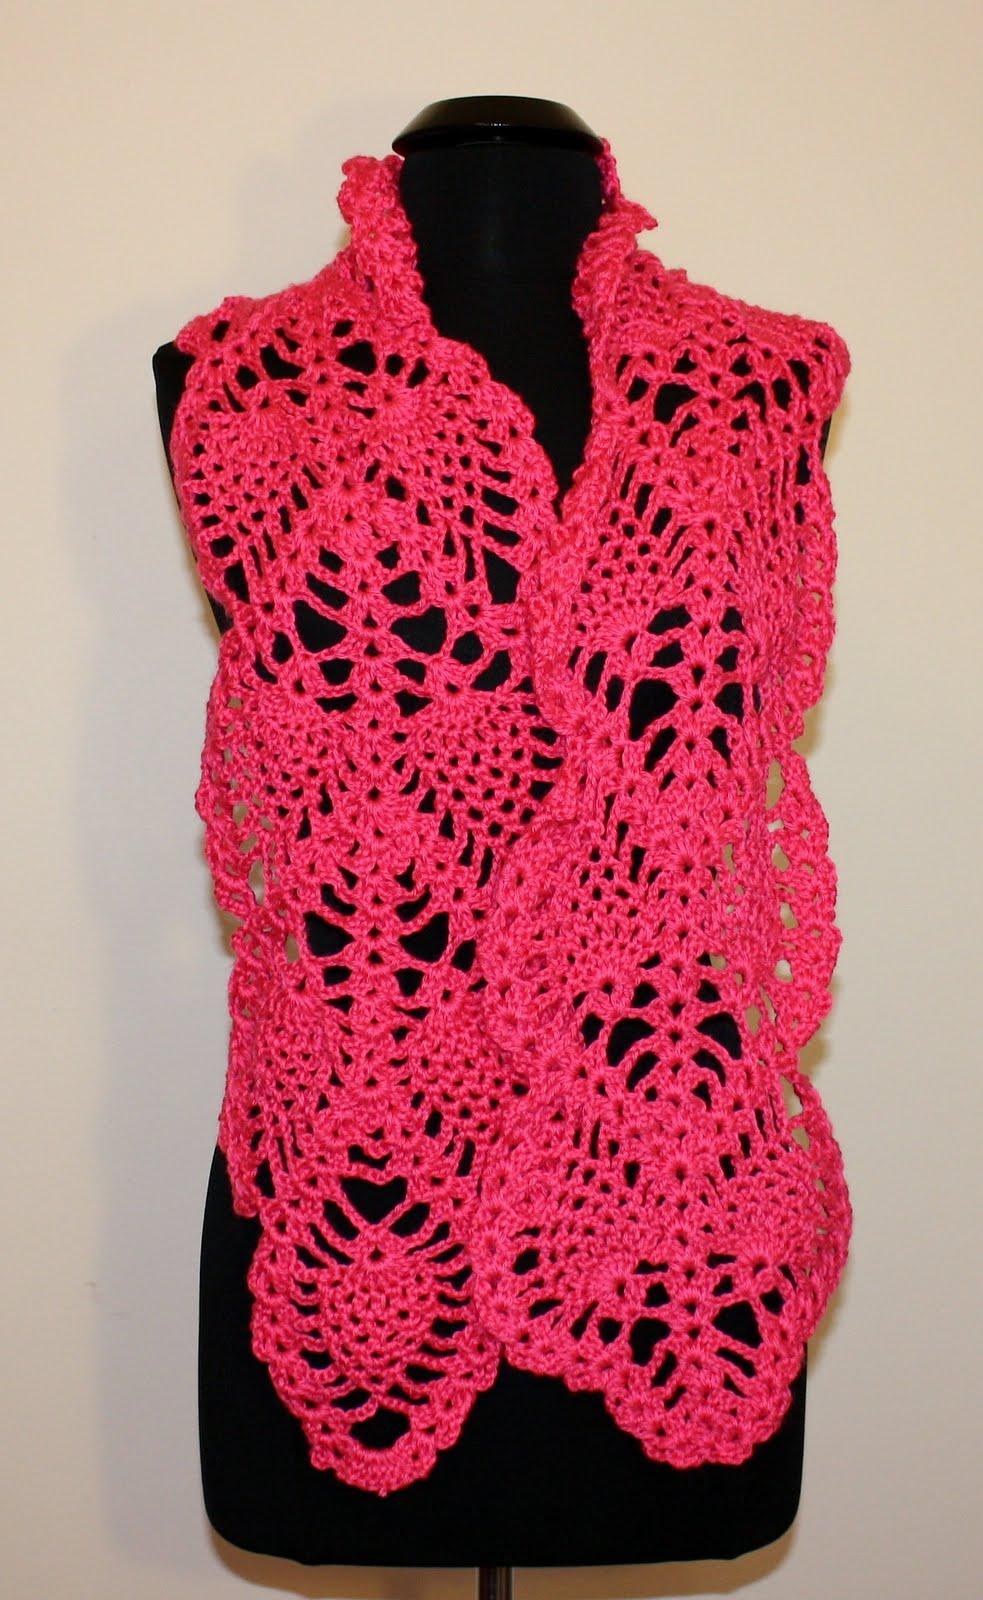 crochet scarves for valentine s day they re listed for sale in my etsy Crochet Scarf For Sale